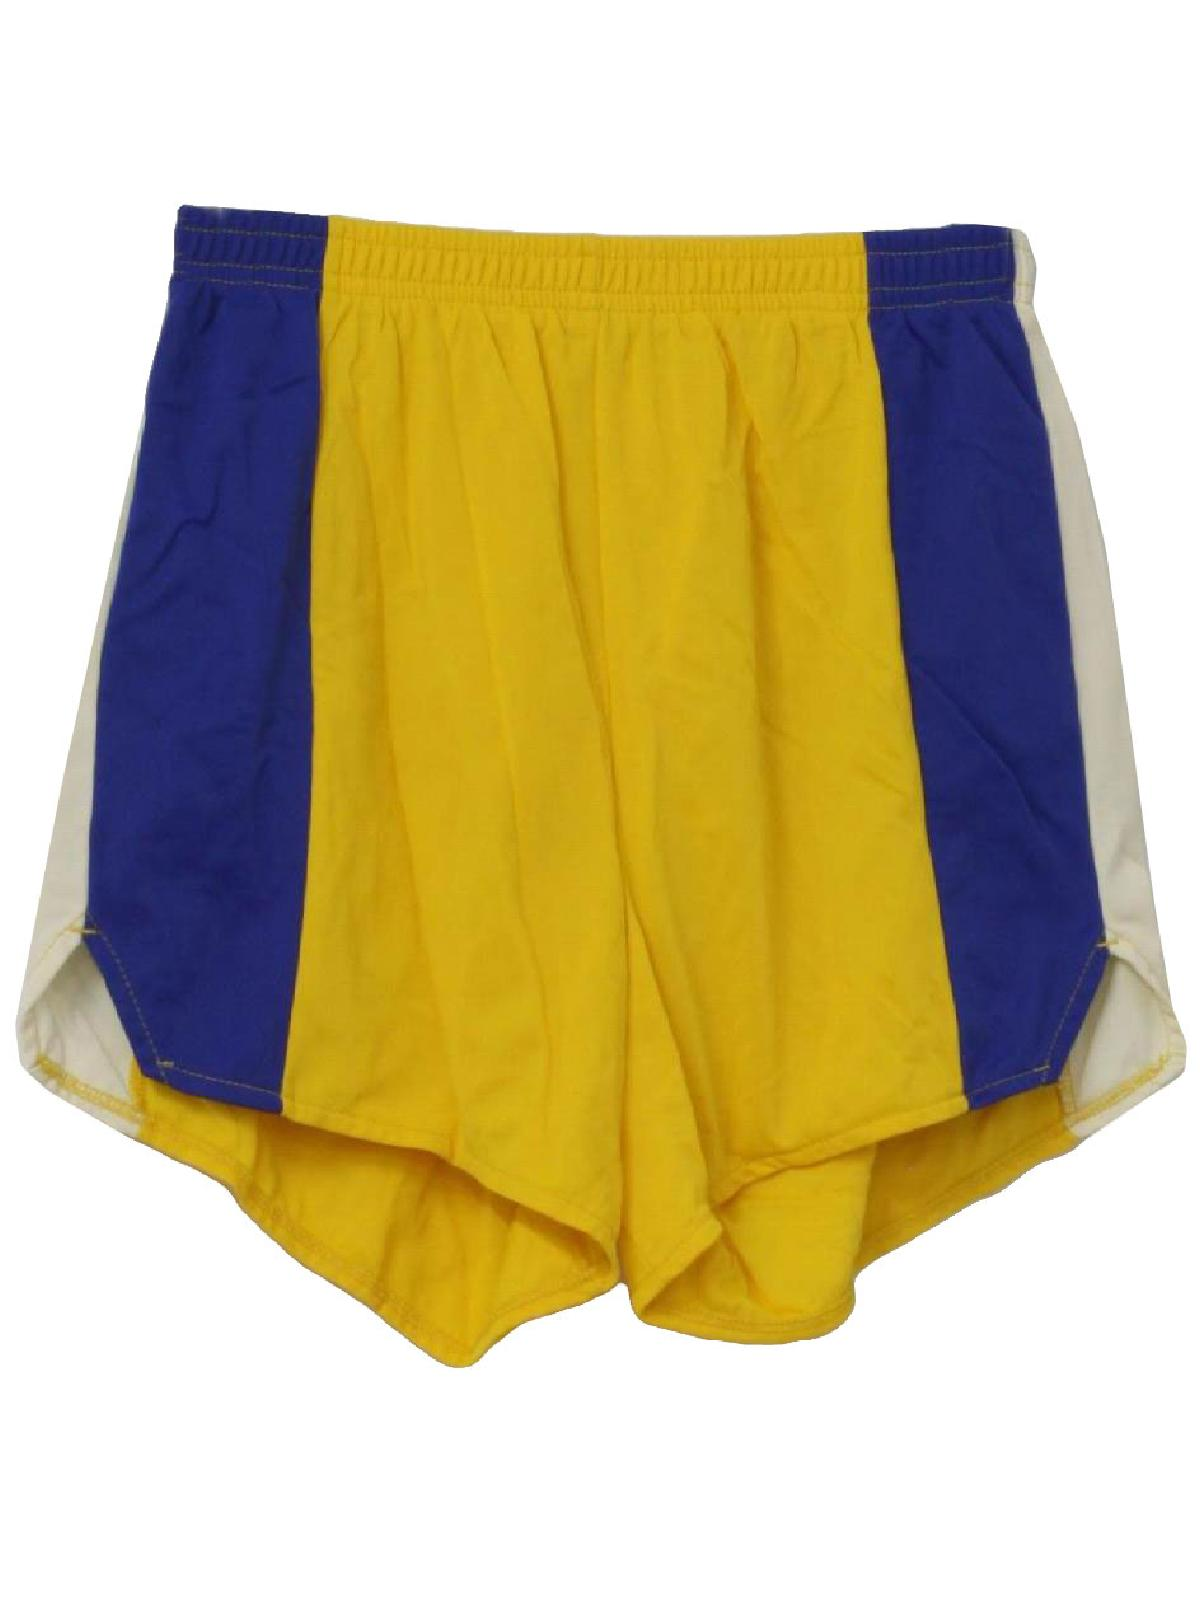 Retro Nineties Shorts: 90s -Pacific Coast Sportswear- Mens yellow ...